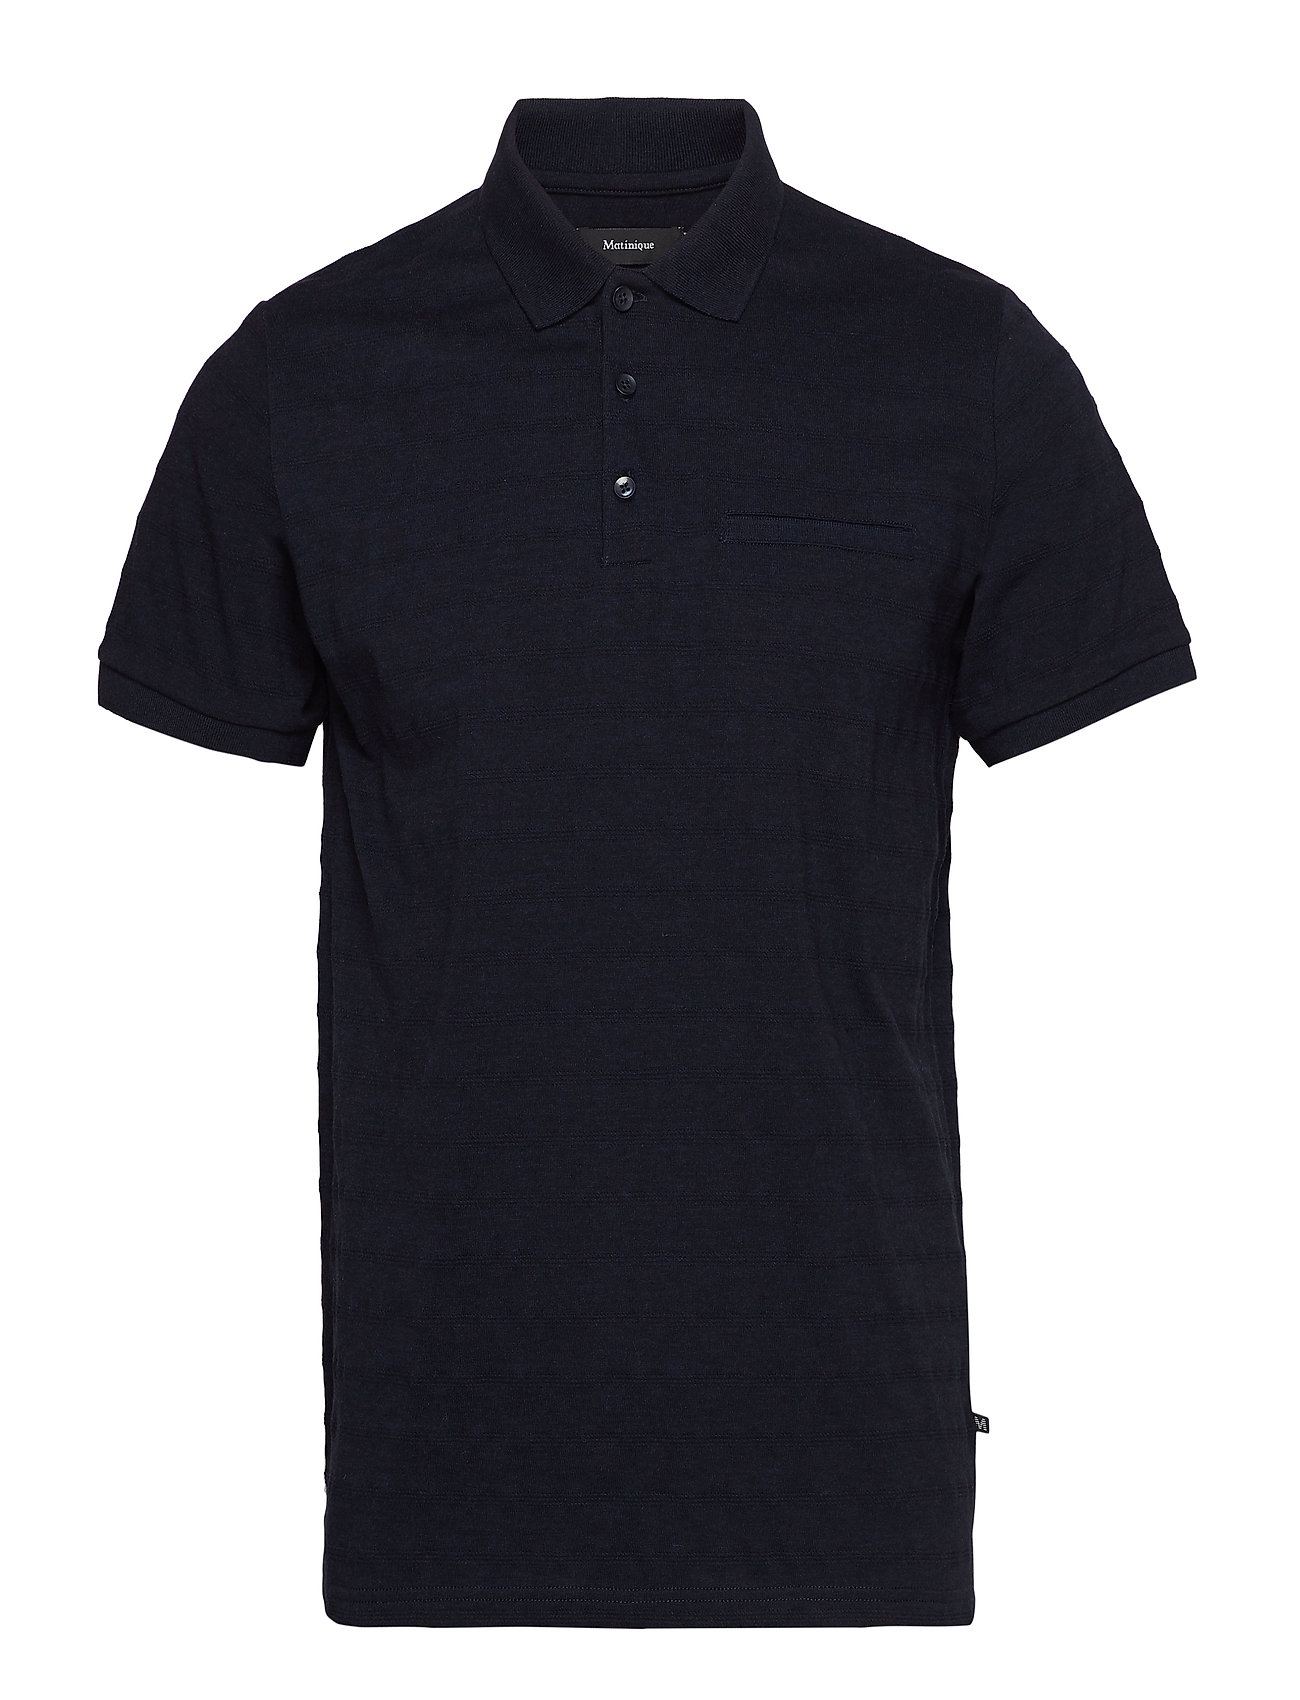 Matinique Brolo T - DARK NAVY